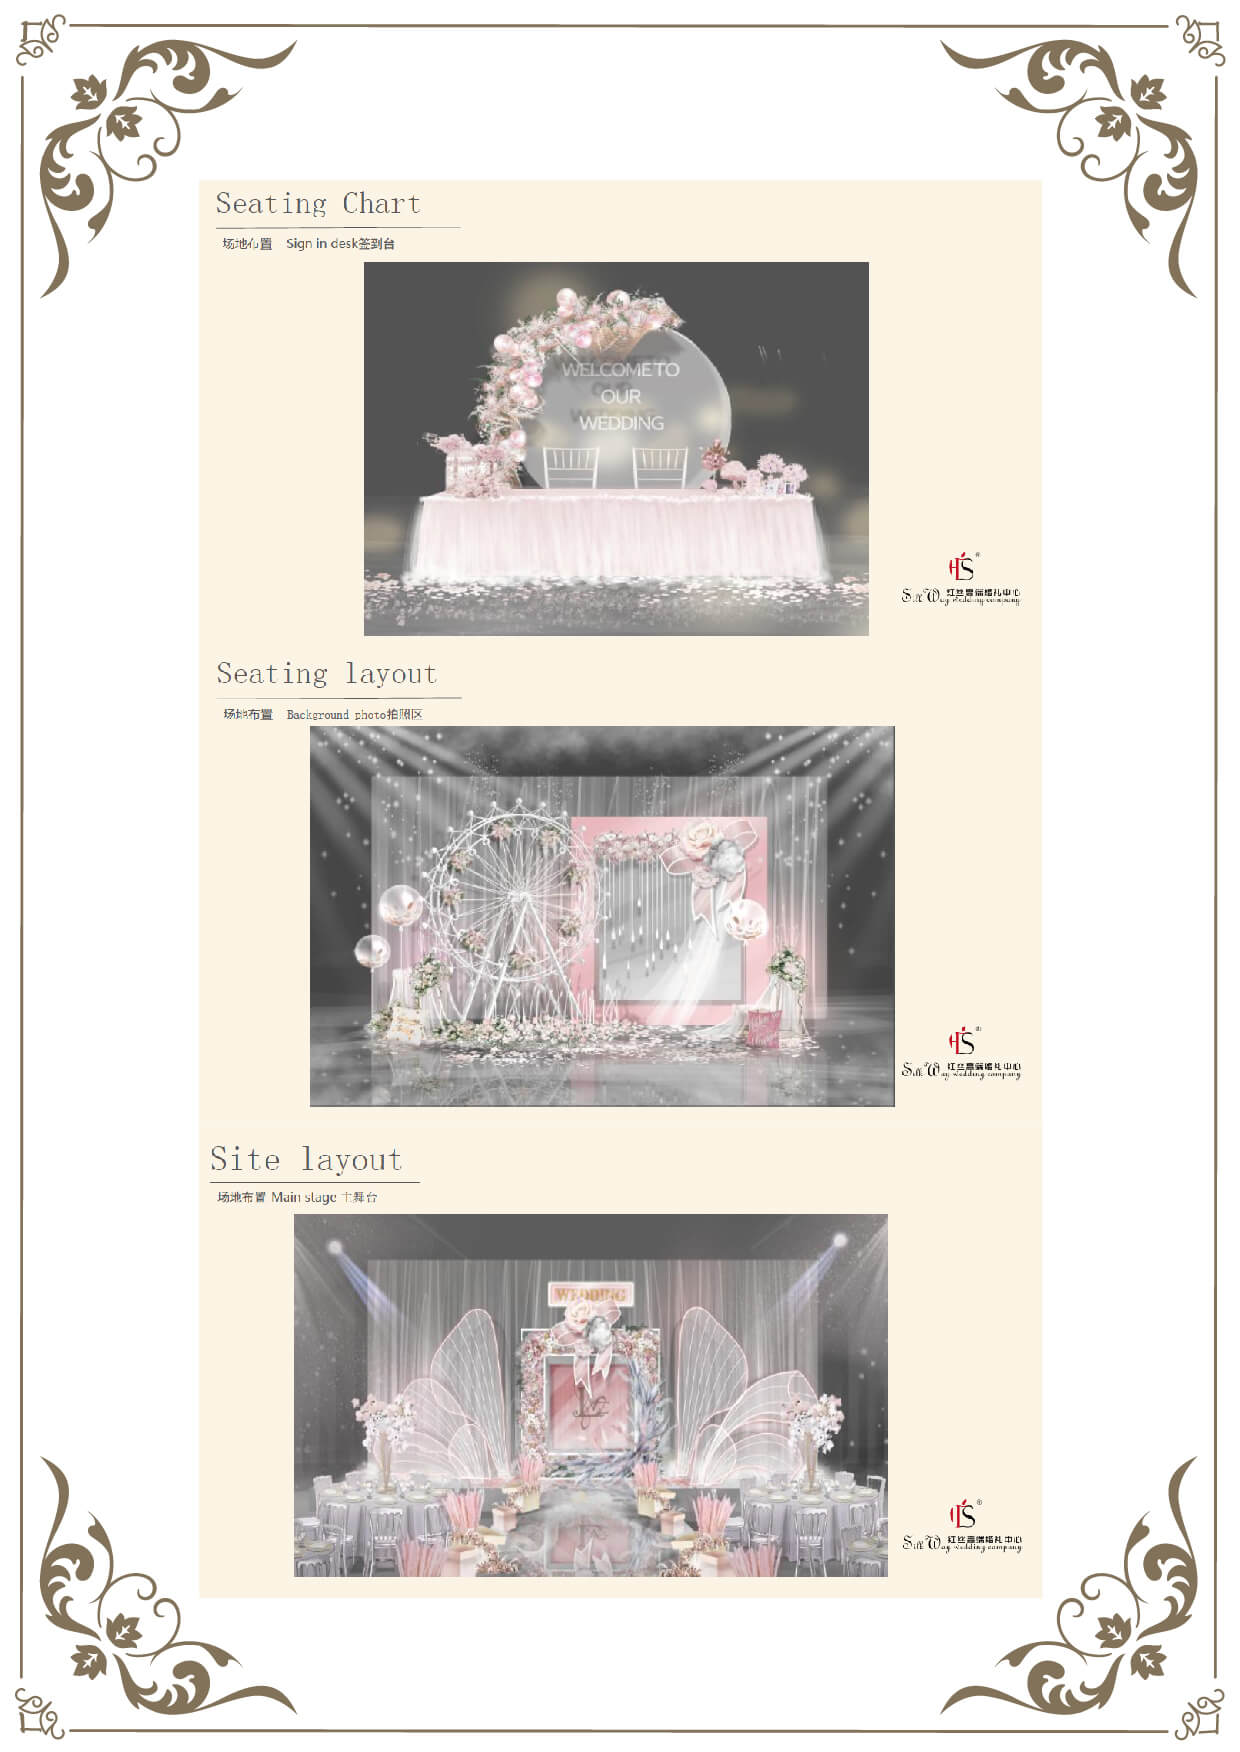 ONE-STOP WEDDING PACKAGE PACKAGE A